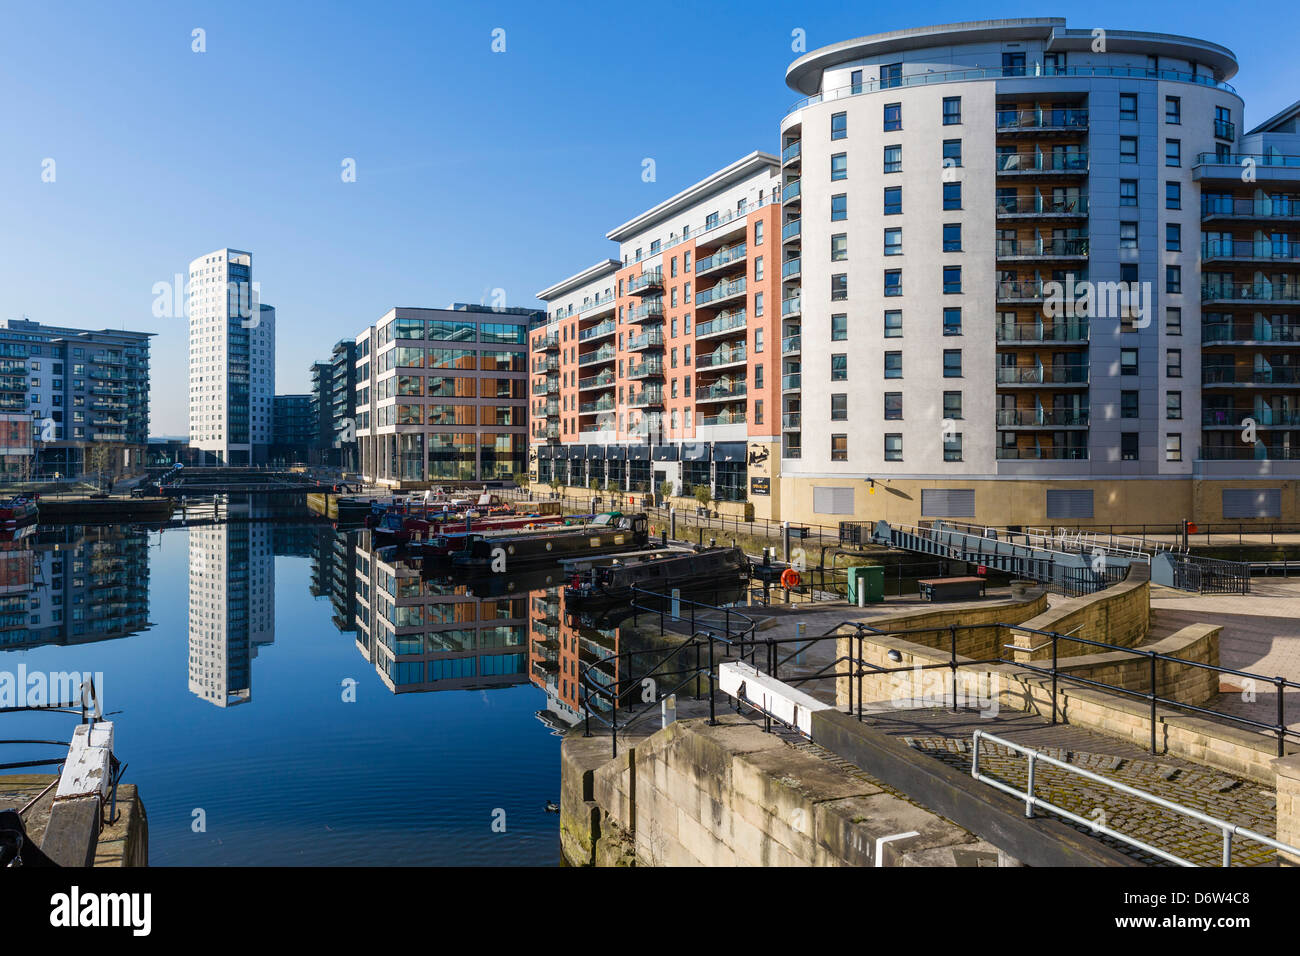 Waterfront Apartment Blocks In Clarence Dock, Leeds, West Yorkshire, UK